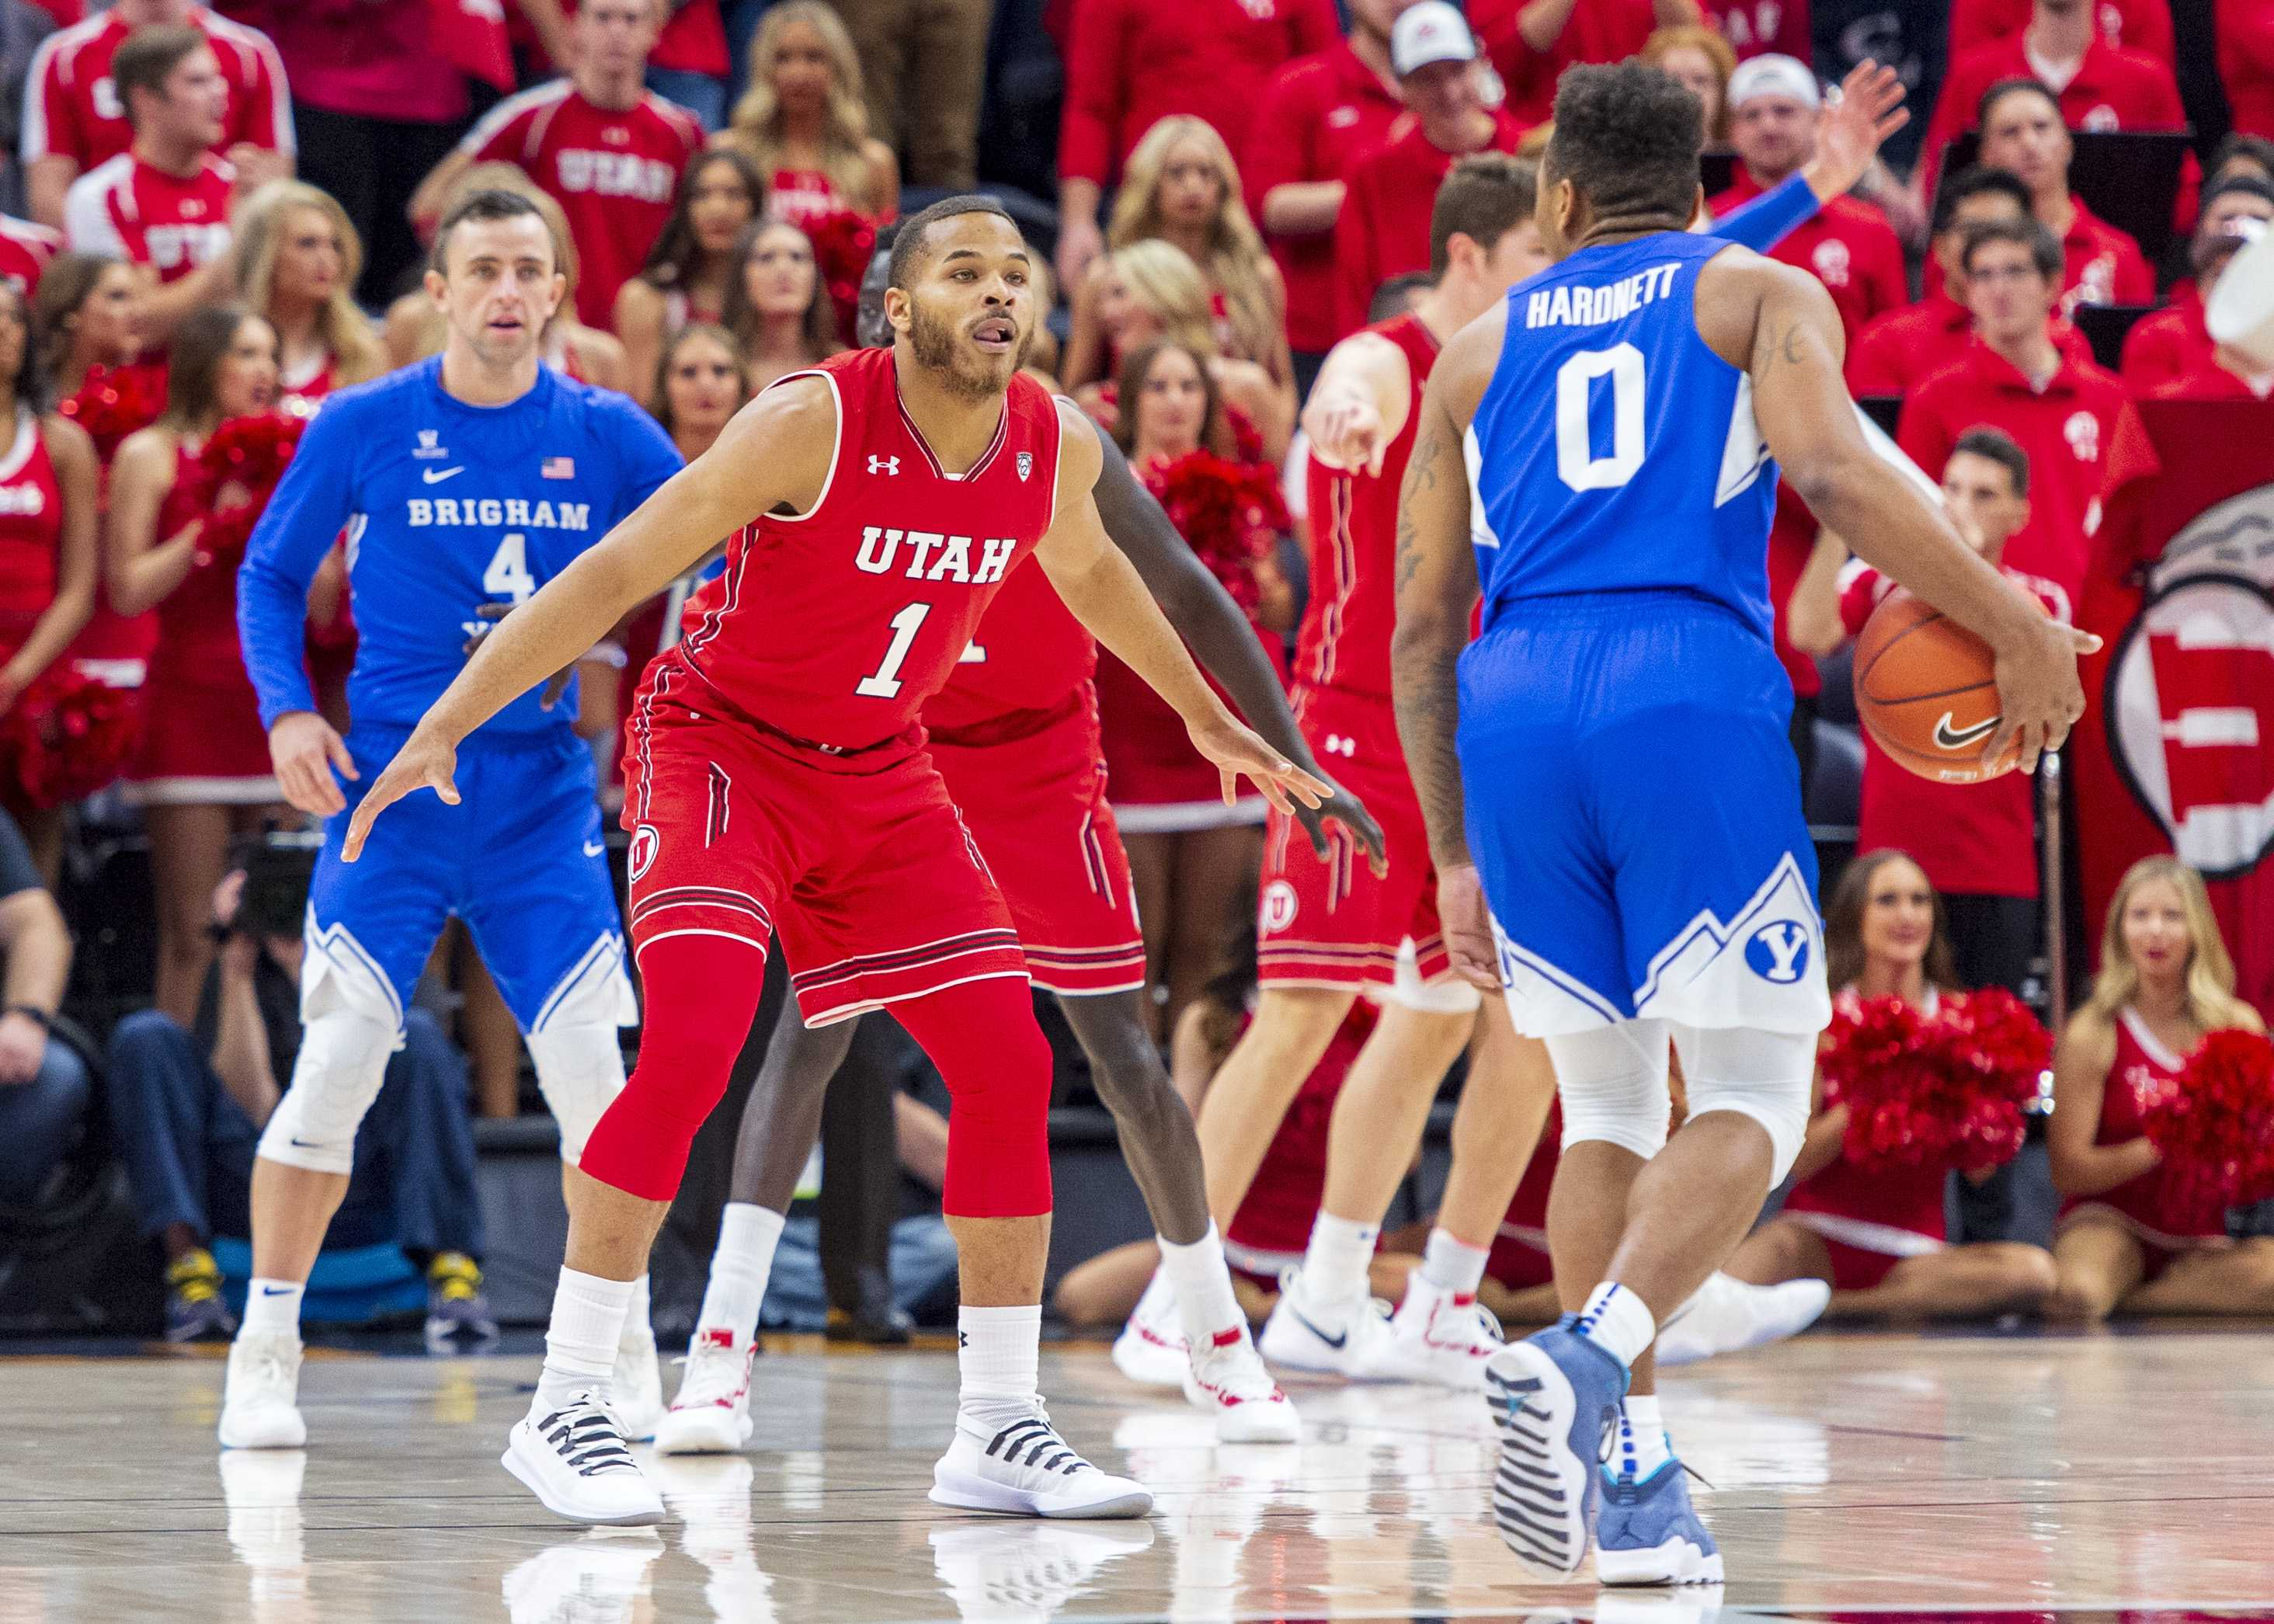 University of Utah junior guard Charles Jones (1) guards Brigham Young University junior guard Jahshire Hardnett (0) during an NCAA college basketball game at the Vivint Smart Home Arena in Salt Lake City, Utah on Saturday, Dec. 8, 2018. (Photo by Kiffer Creveling | The Daily Utah Chronicle)